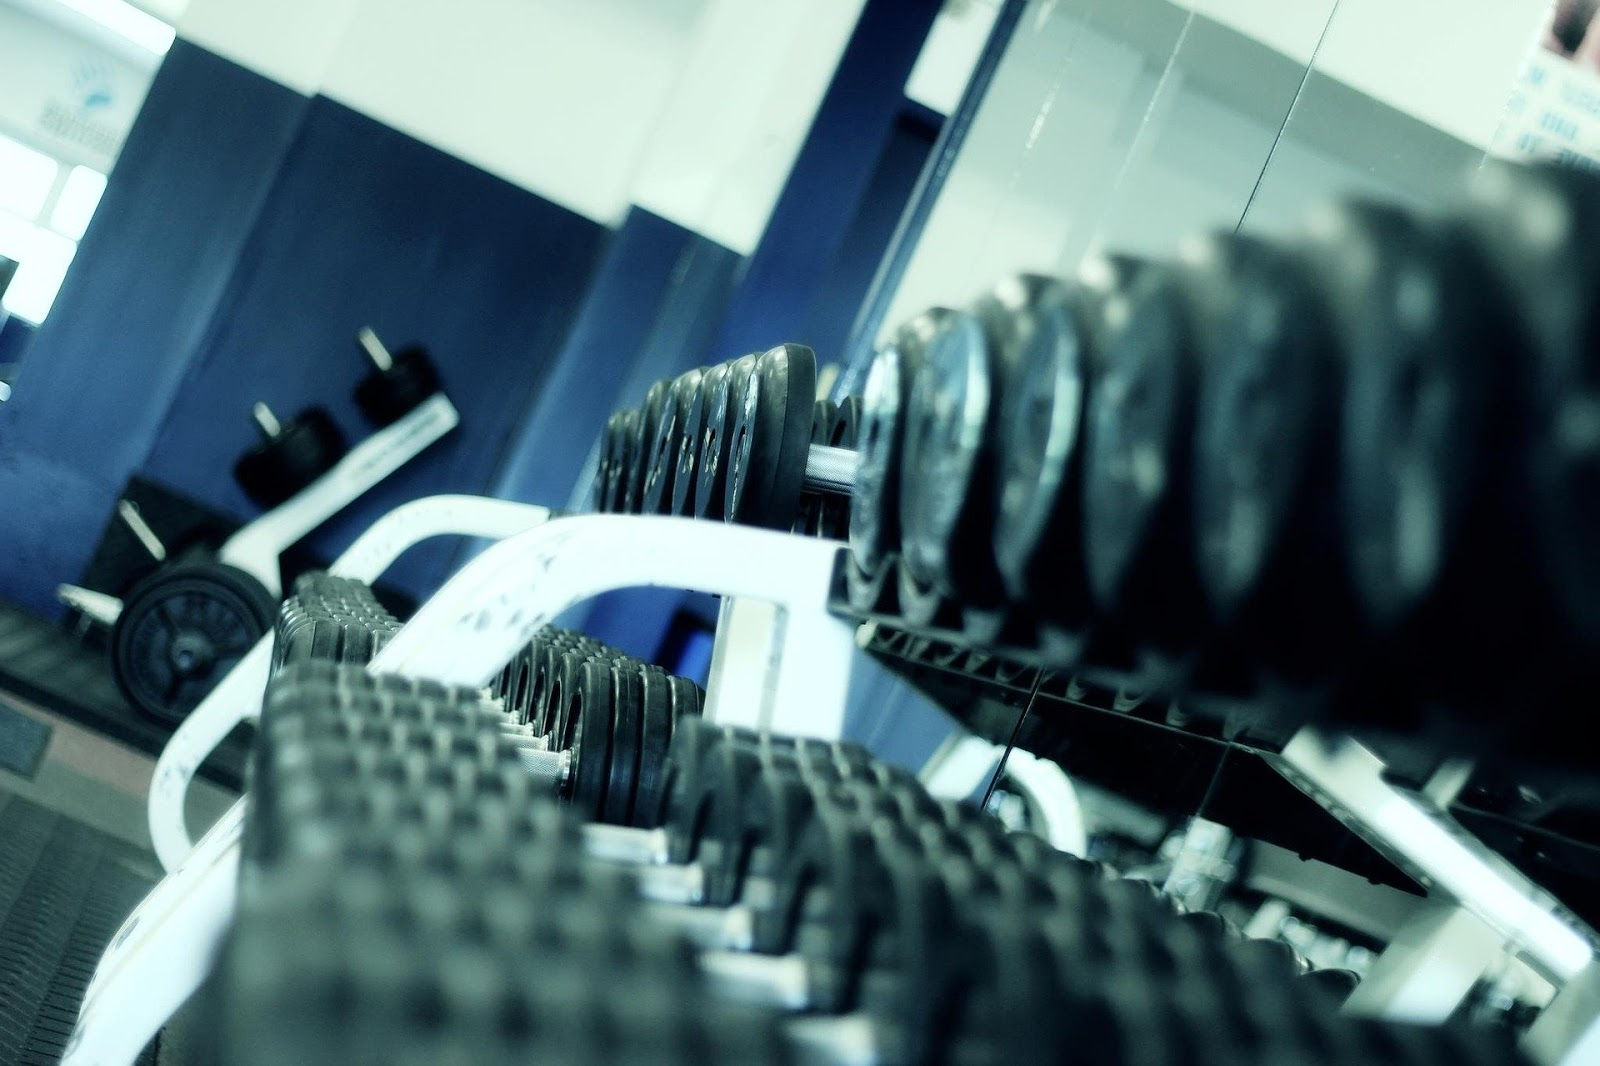 The Sports Archives Blog - The Sports Archives - Top Ways To Stay Motivated At The Gym